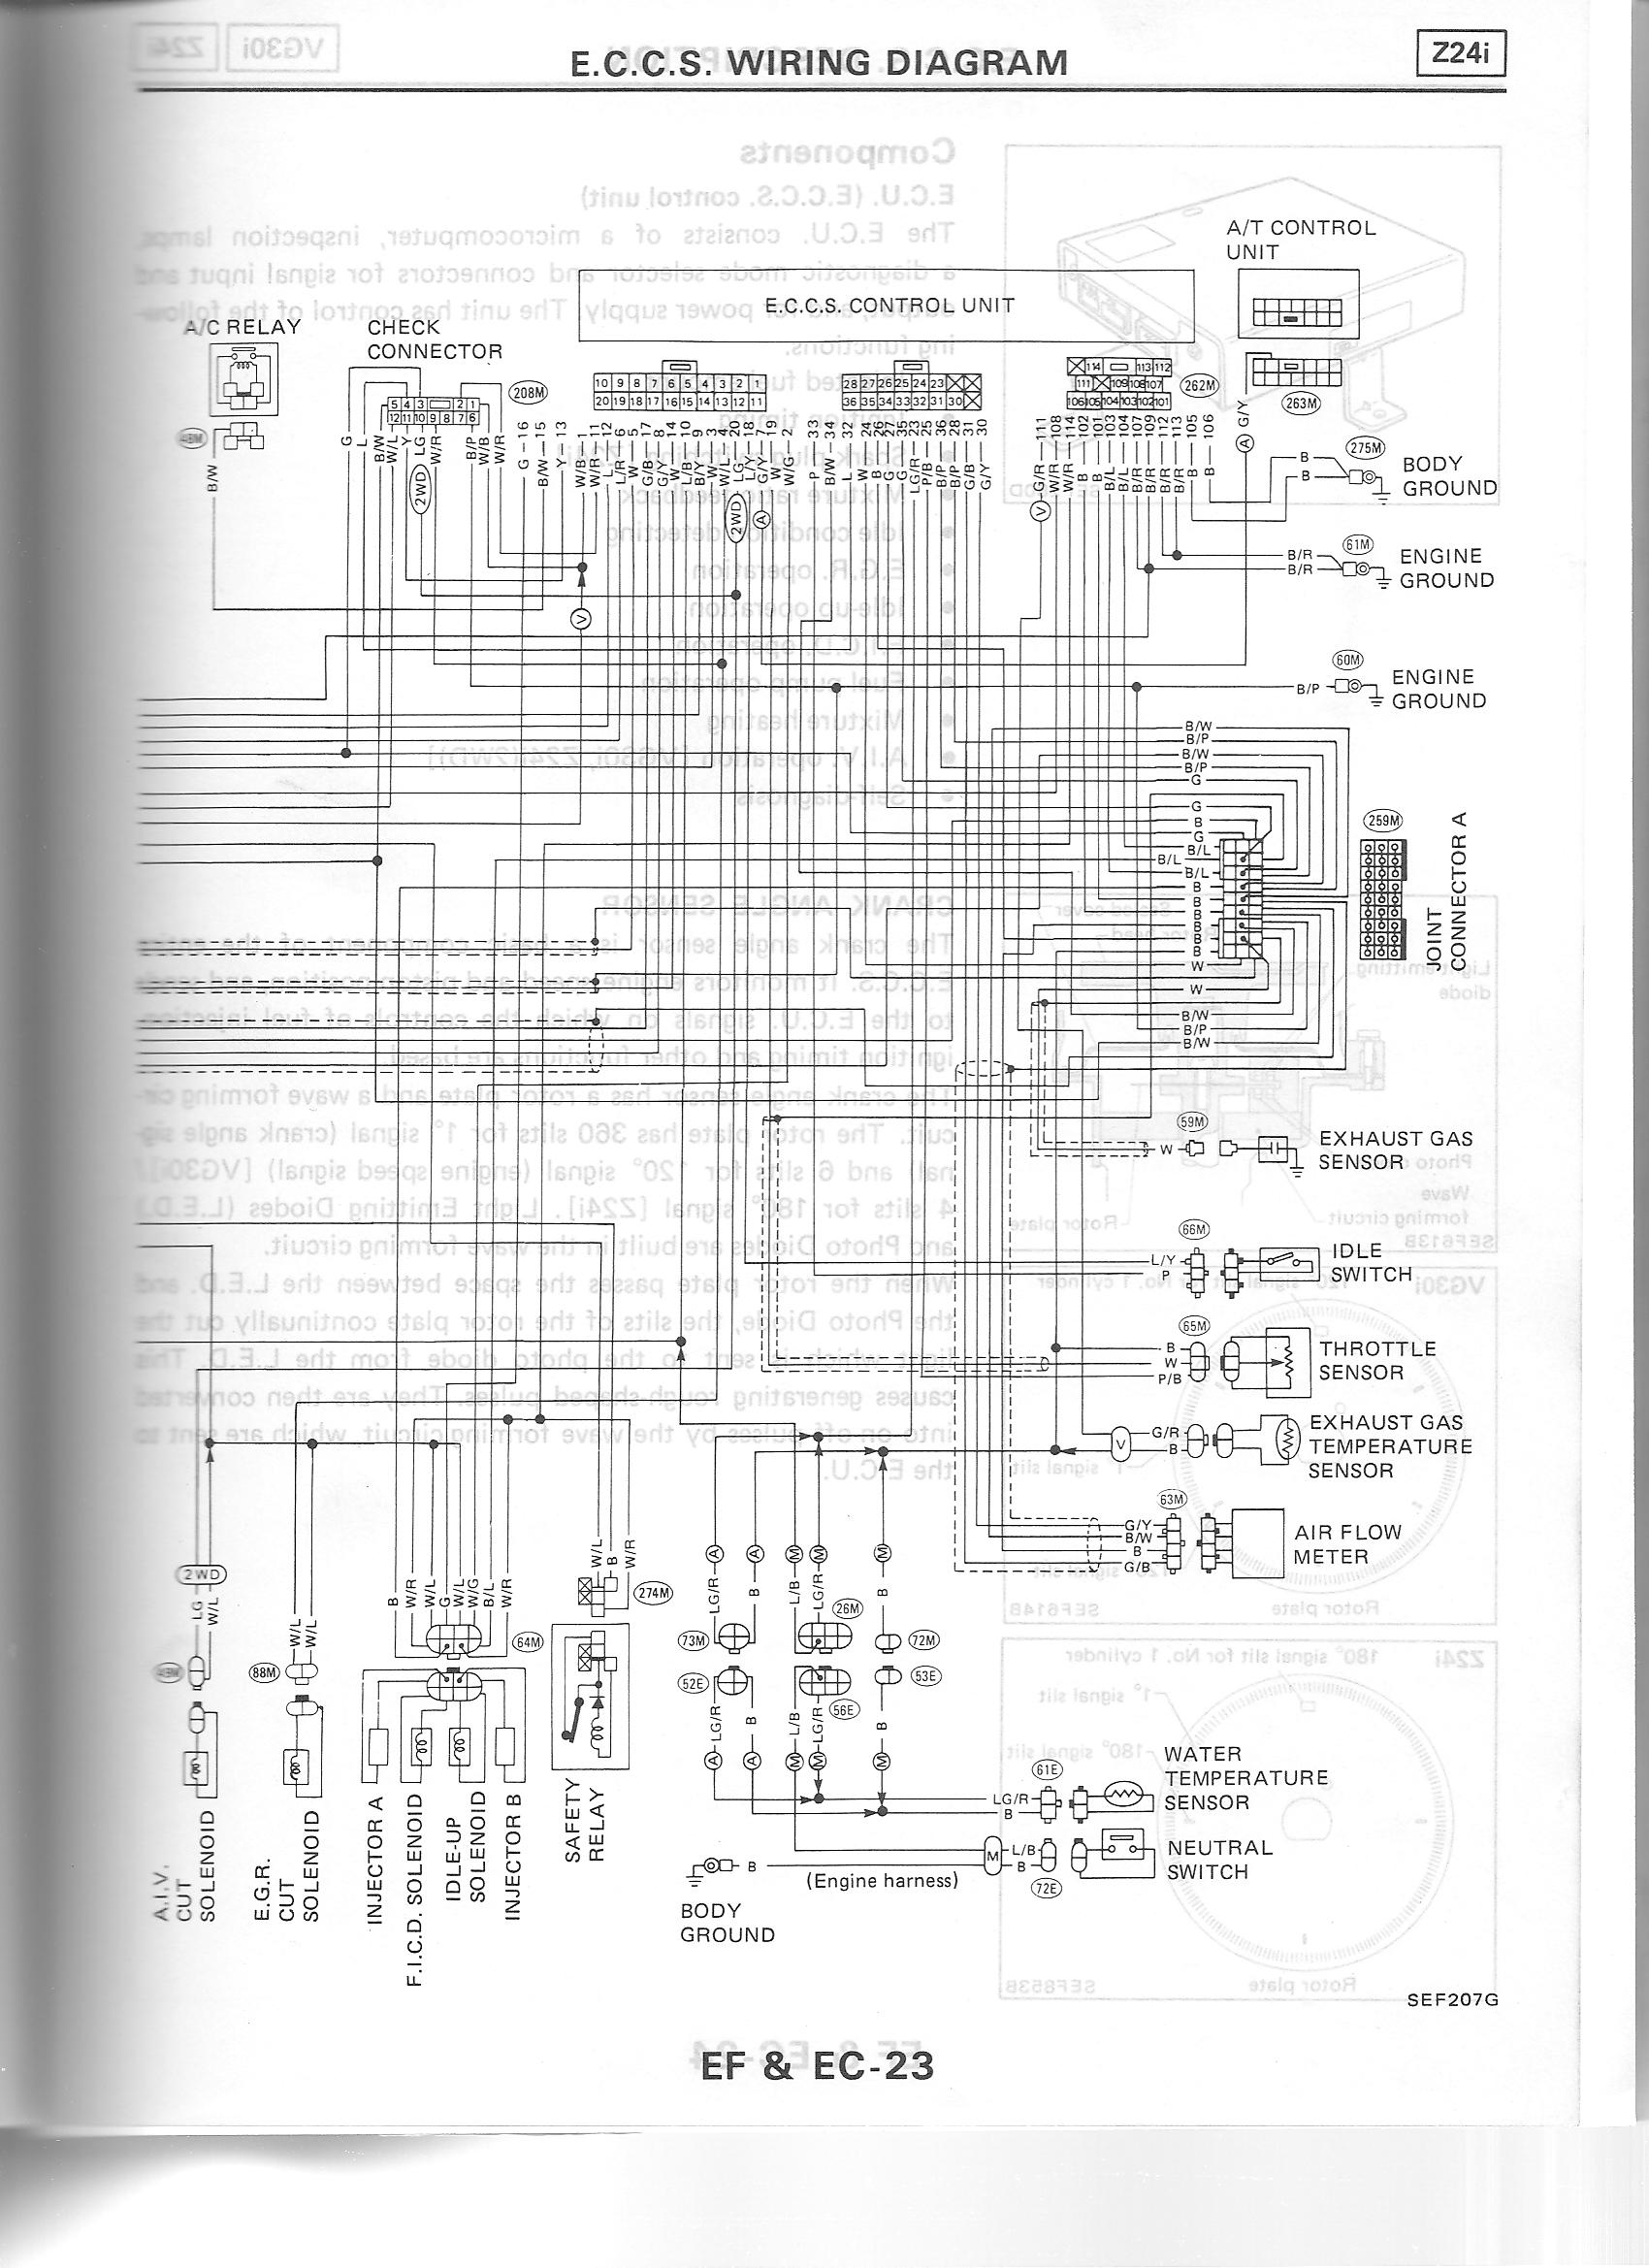 1989 Nissan Pickup Fuel Gauge Wiring Diagram Opinions About 97 Nut Rh Nissannut Com 2006 Schematic Diagrams